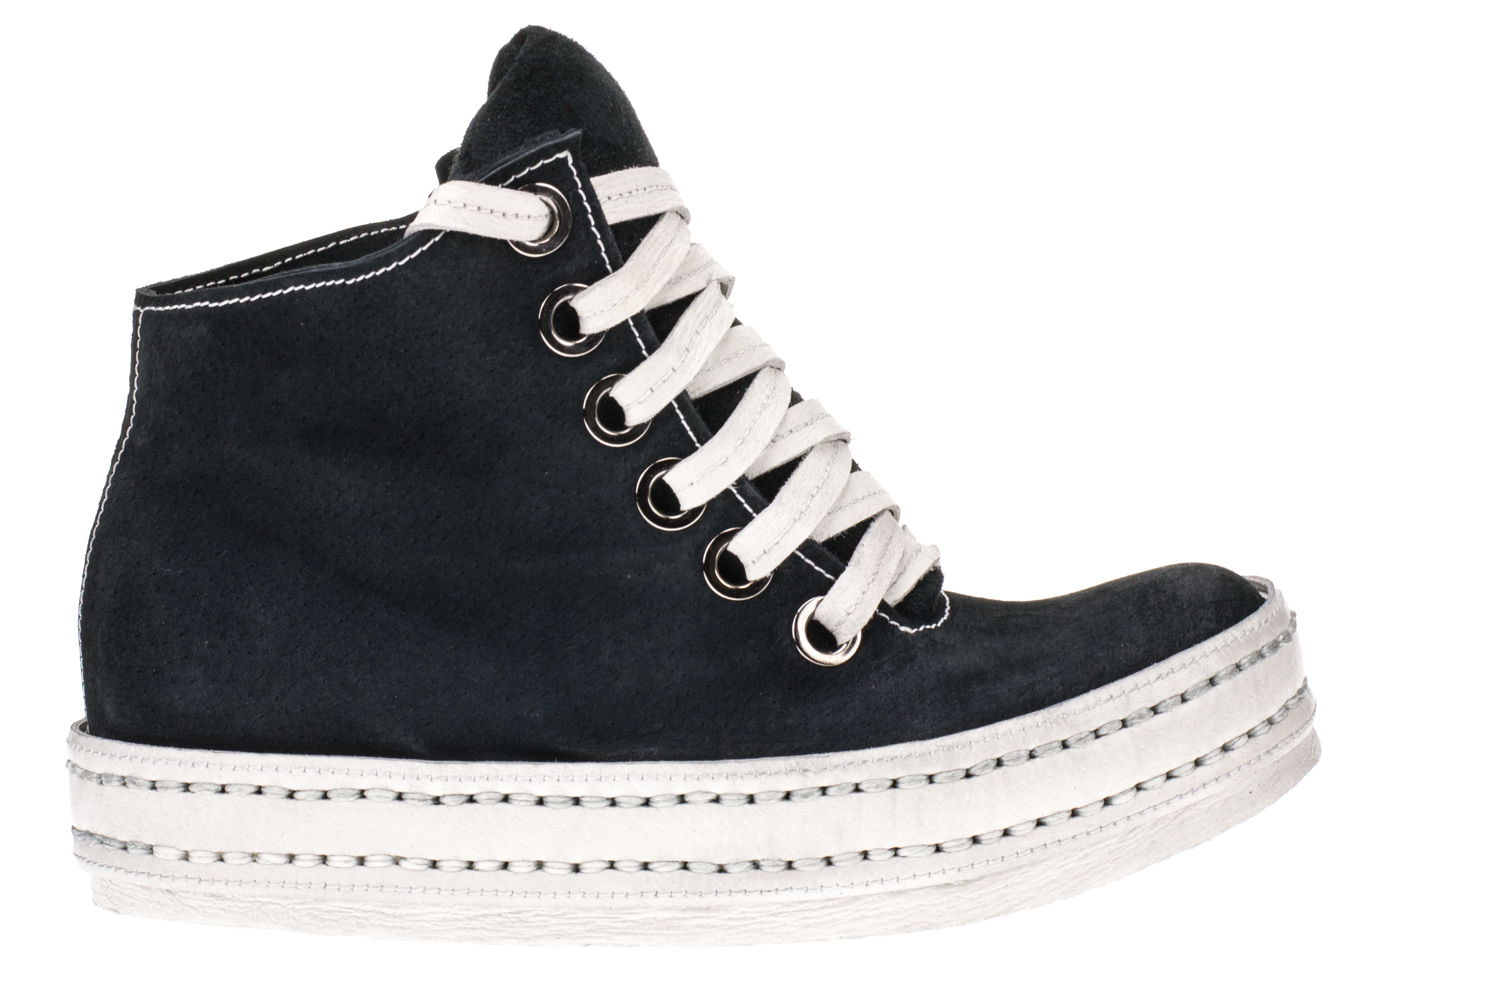 6Hole Navy Blue Suede White